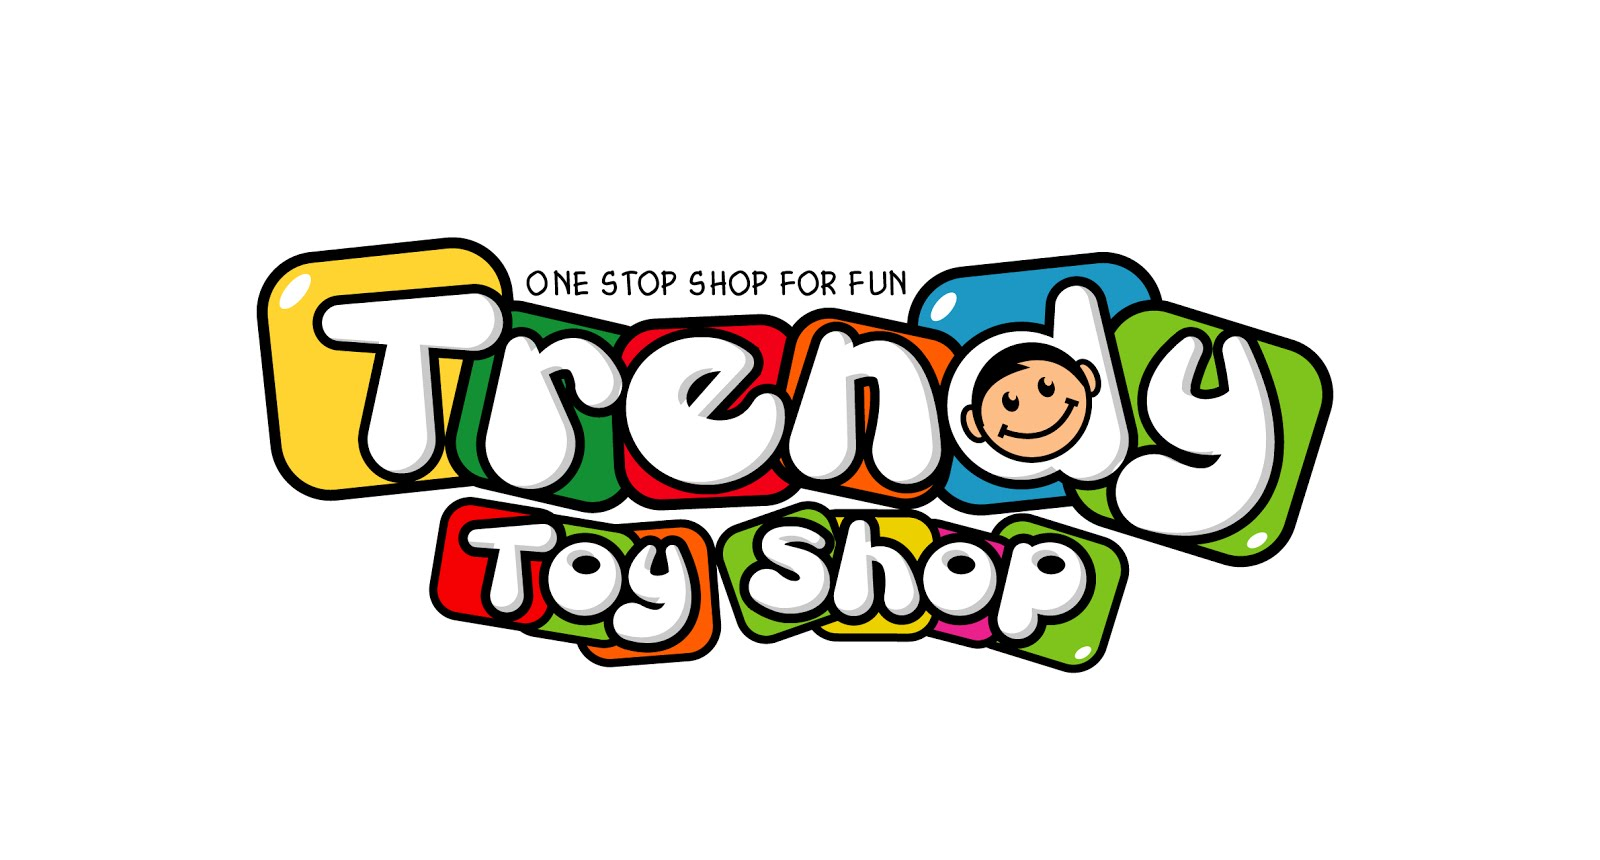 TRENDY TOY SHOP